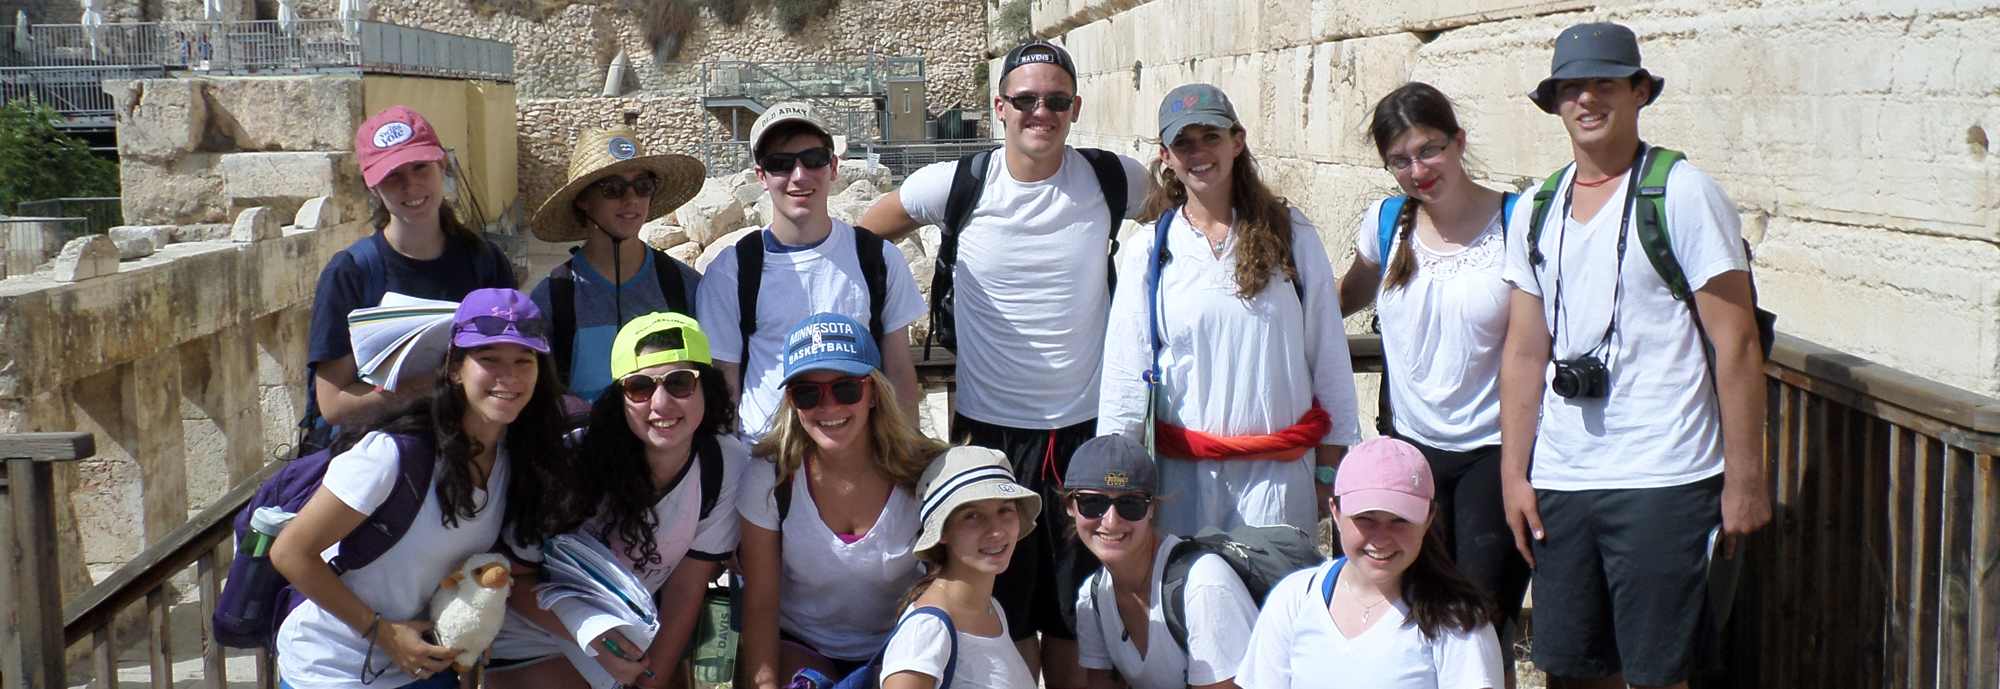 Summer Program - Jewish Culture | URJ Heller High